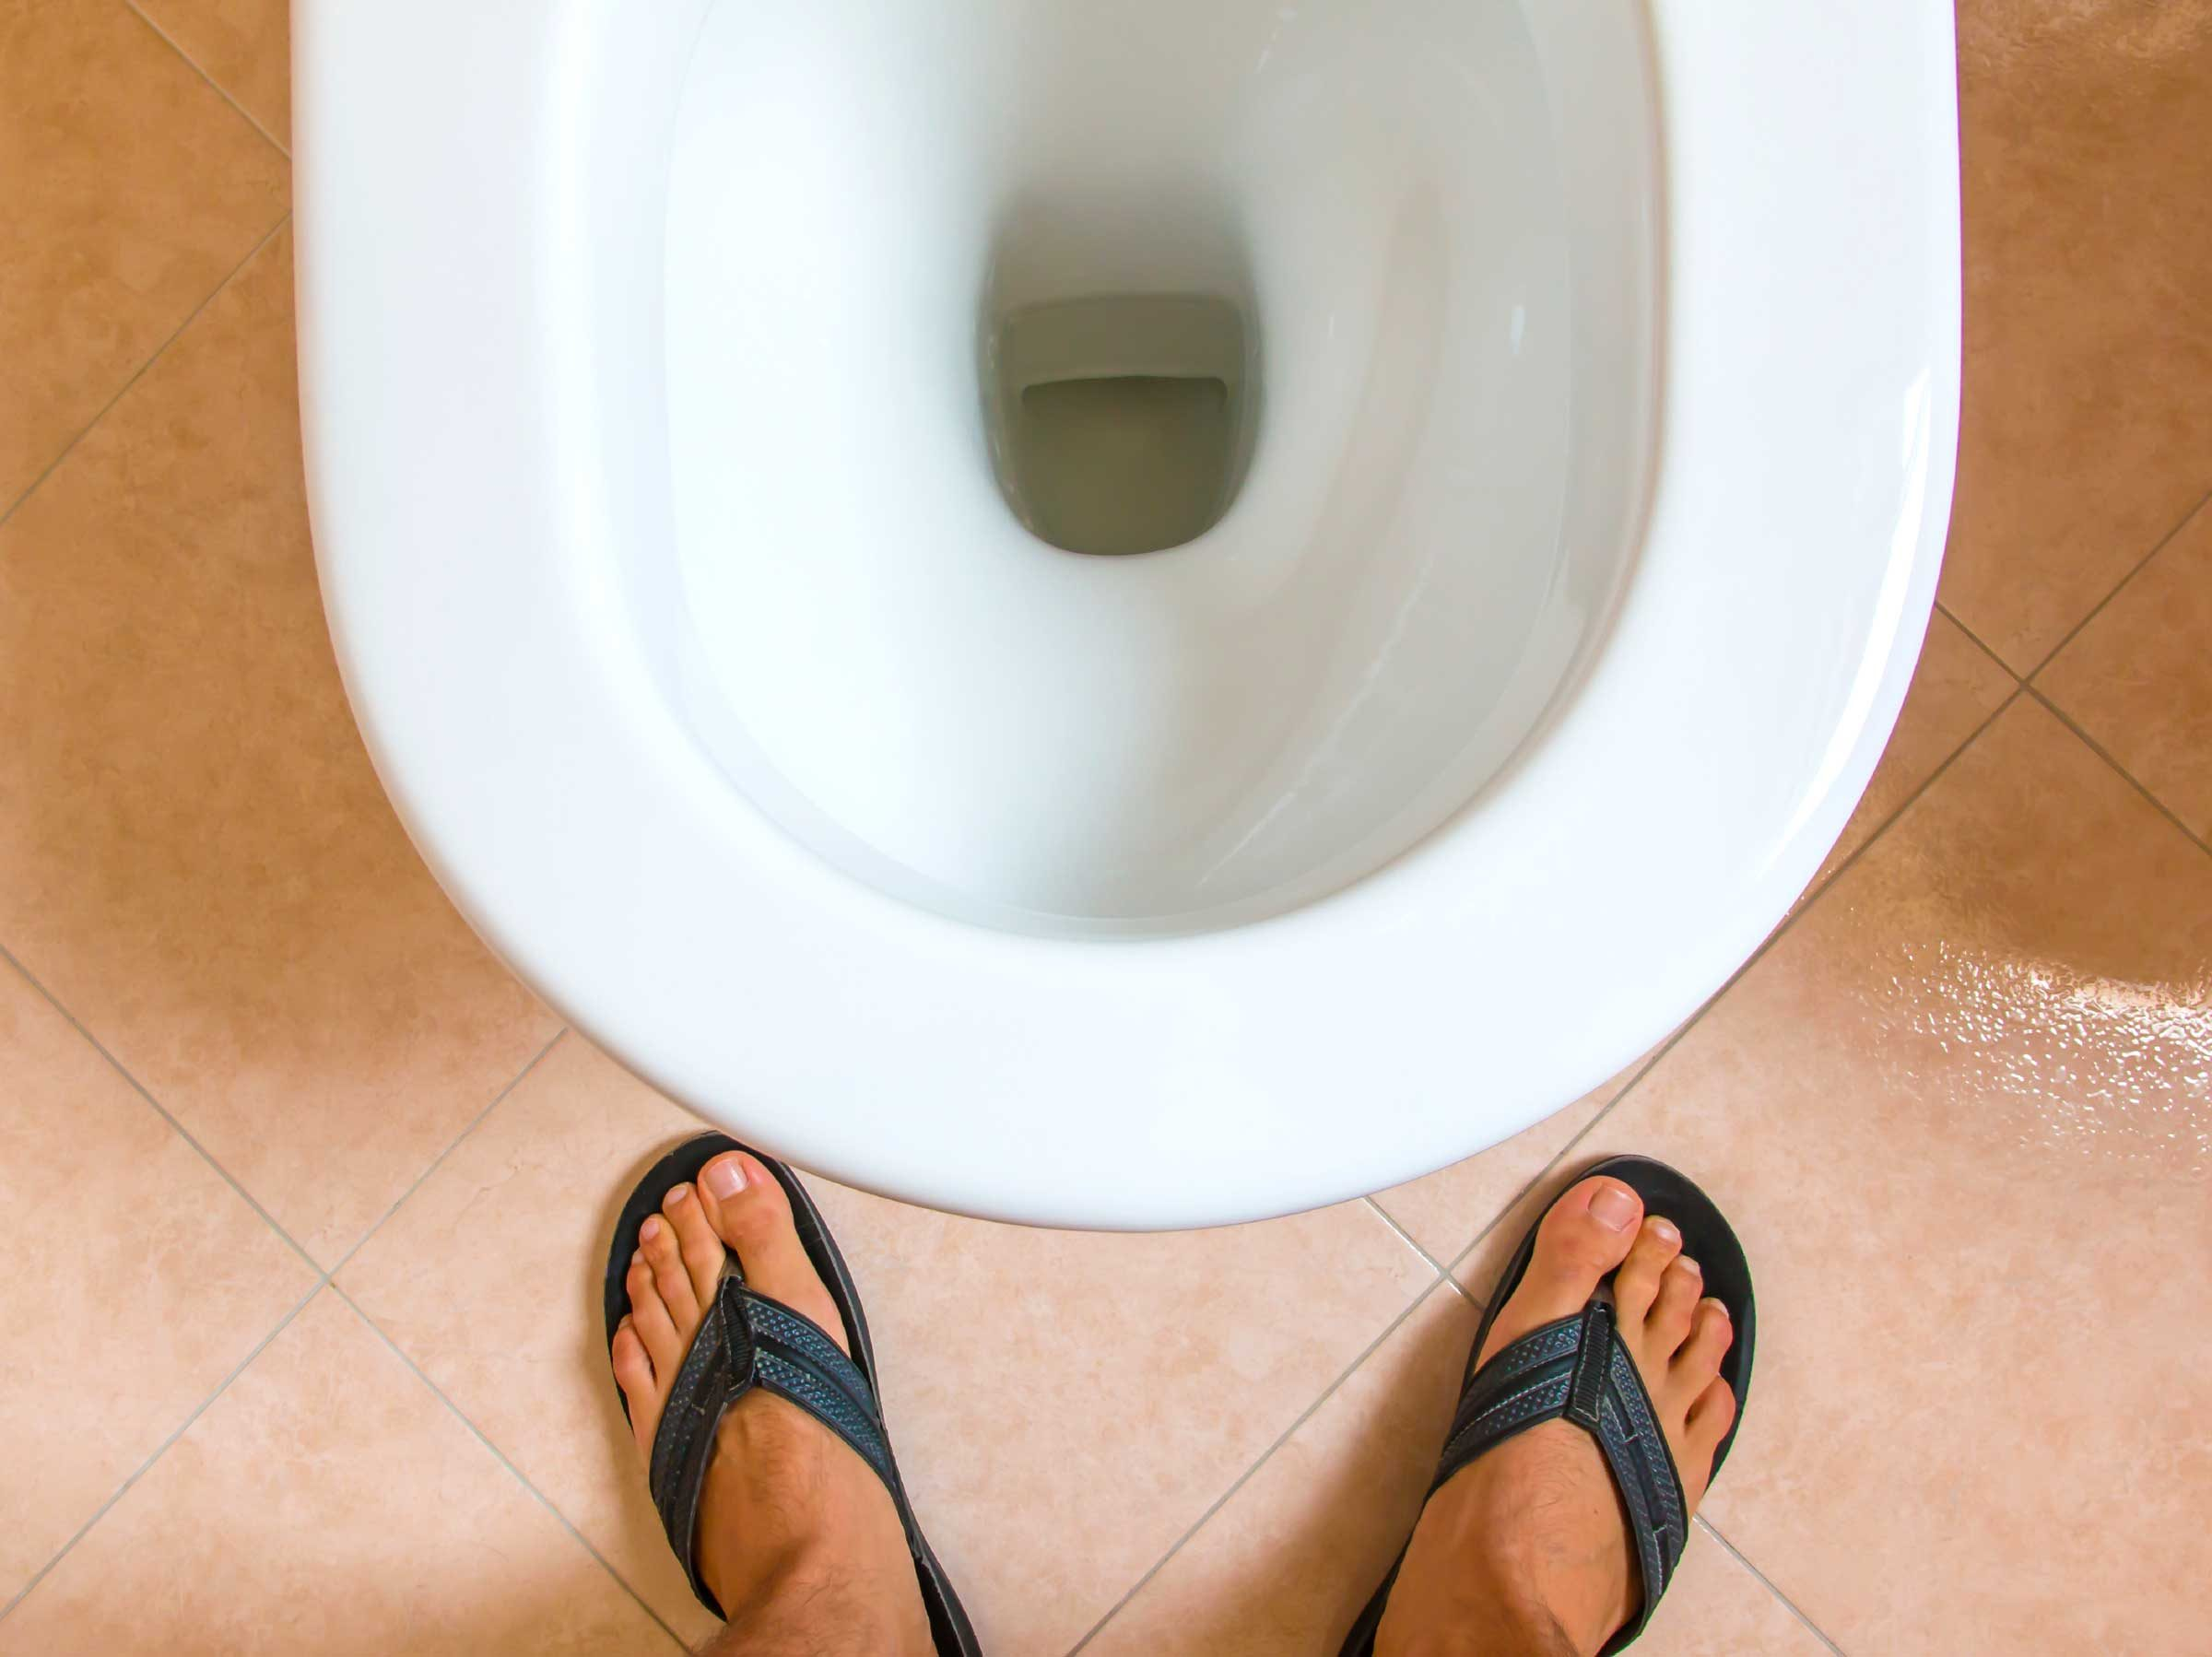 man's feet in front of a toilet